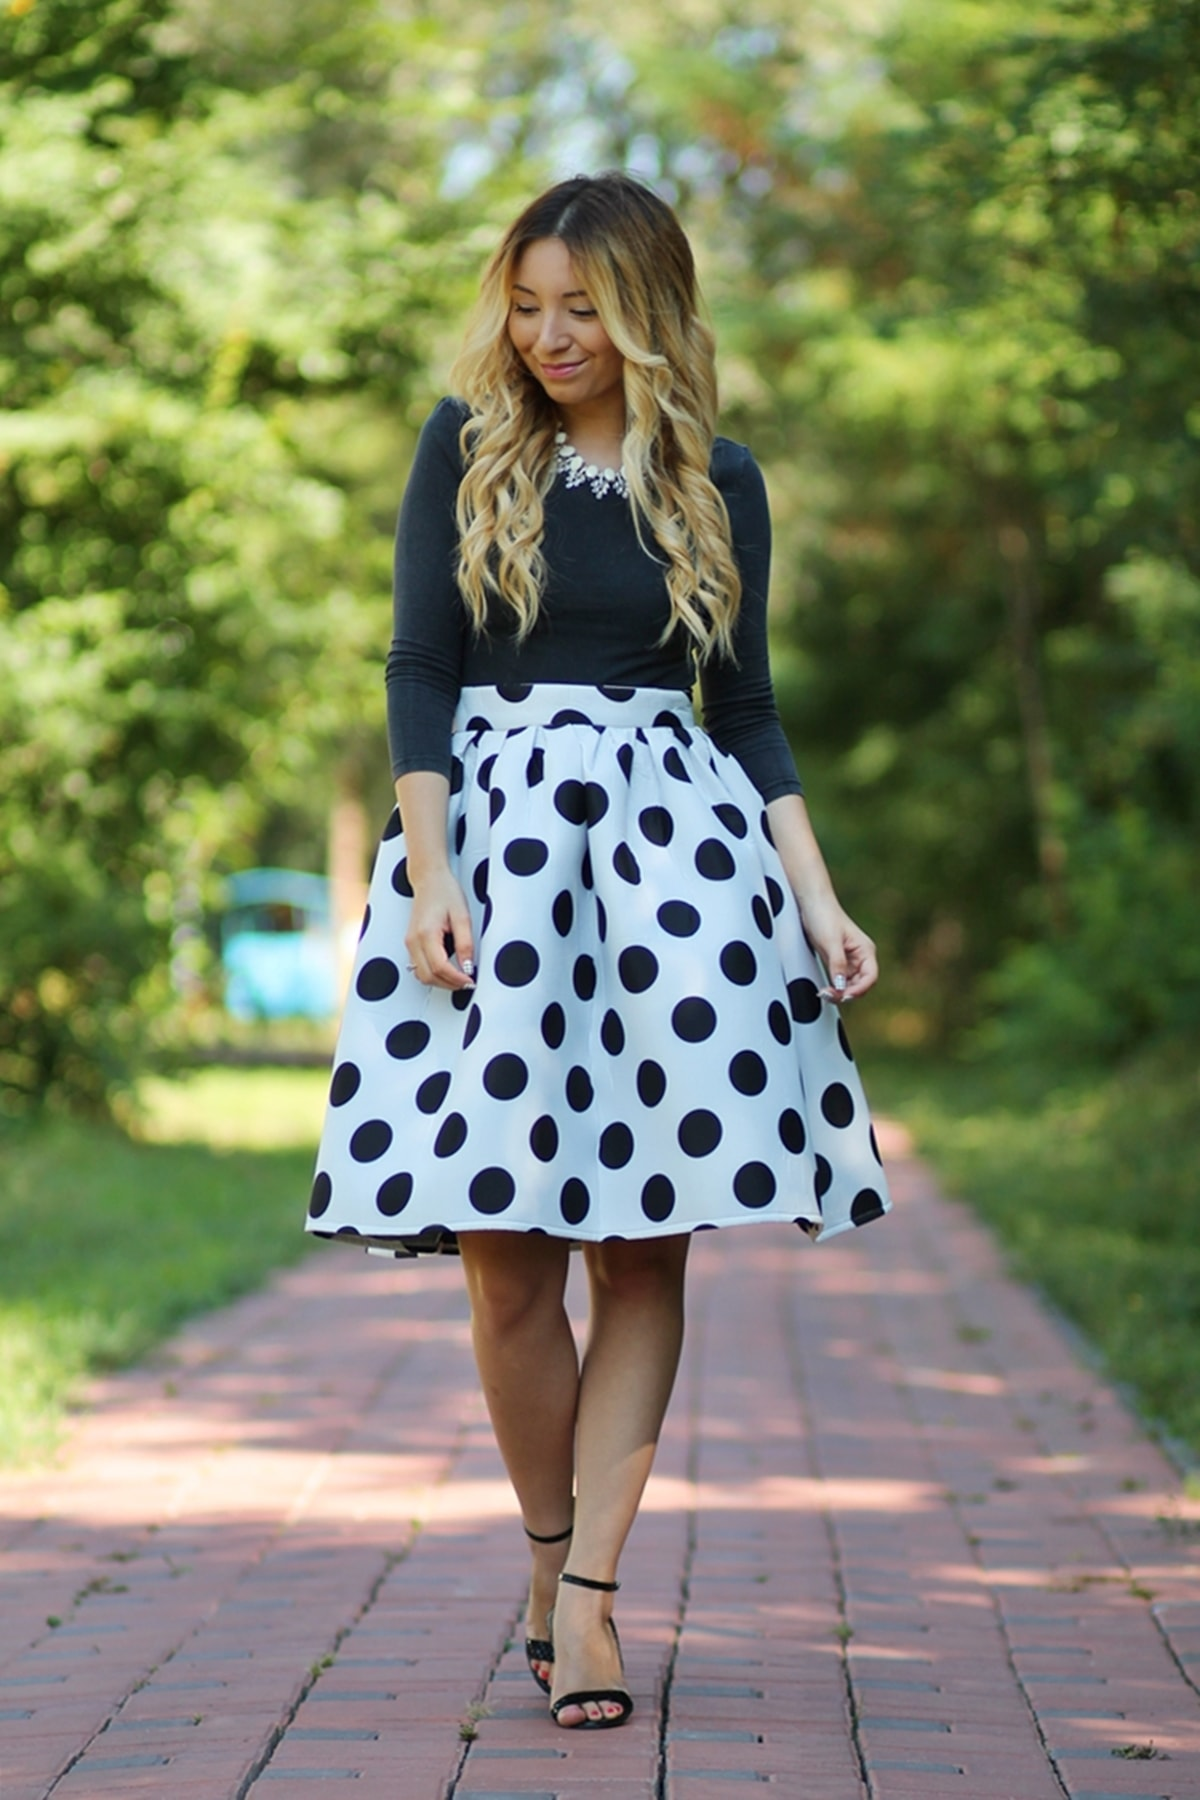 Street style, polka midi skirt, dots, black and white skirt, black crop top, summer look, black sandals, heels, elegant look, 50's look, andreea ristea fashion blogger